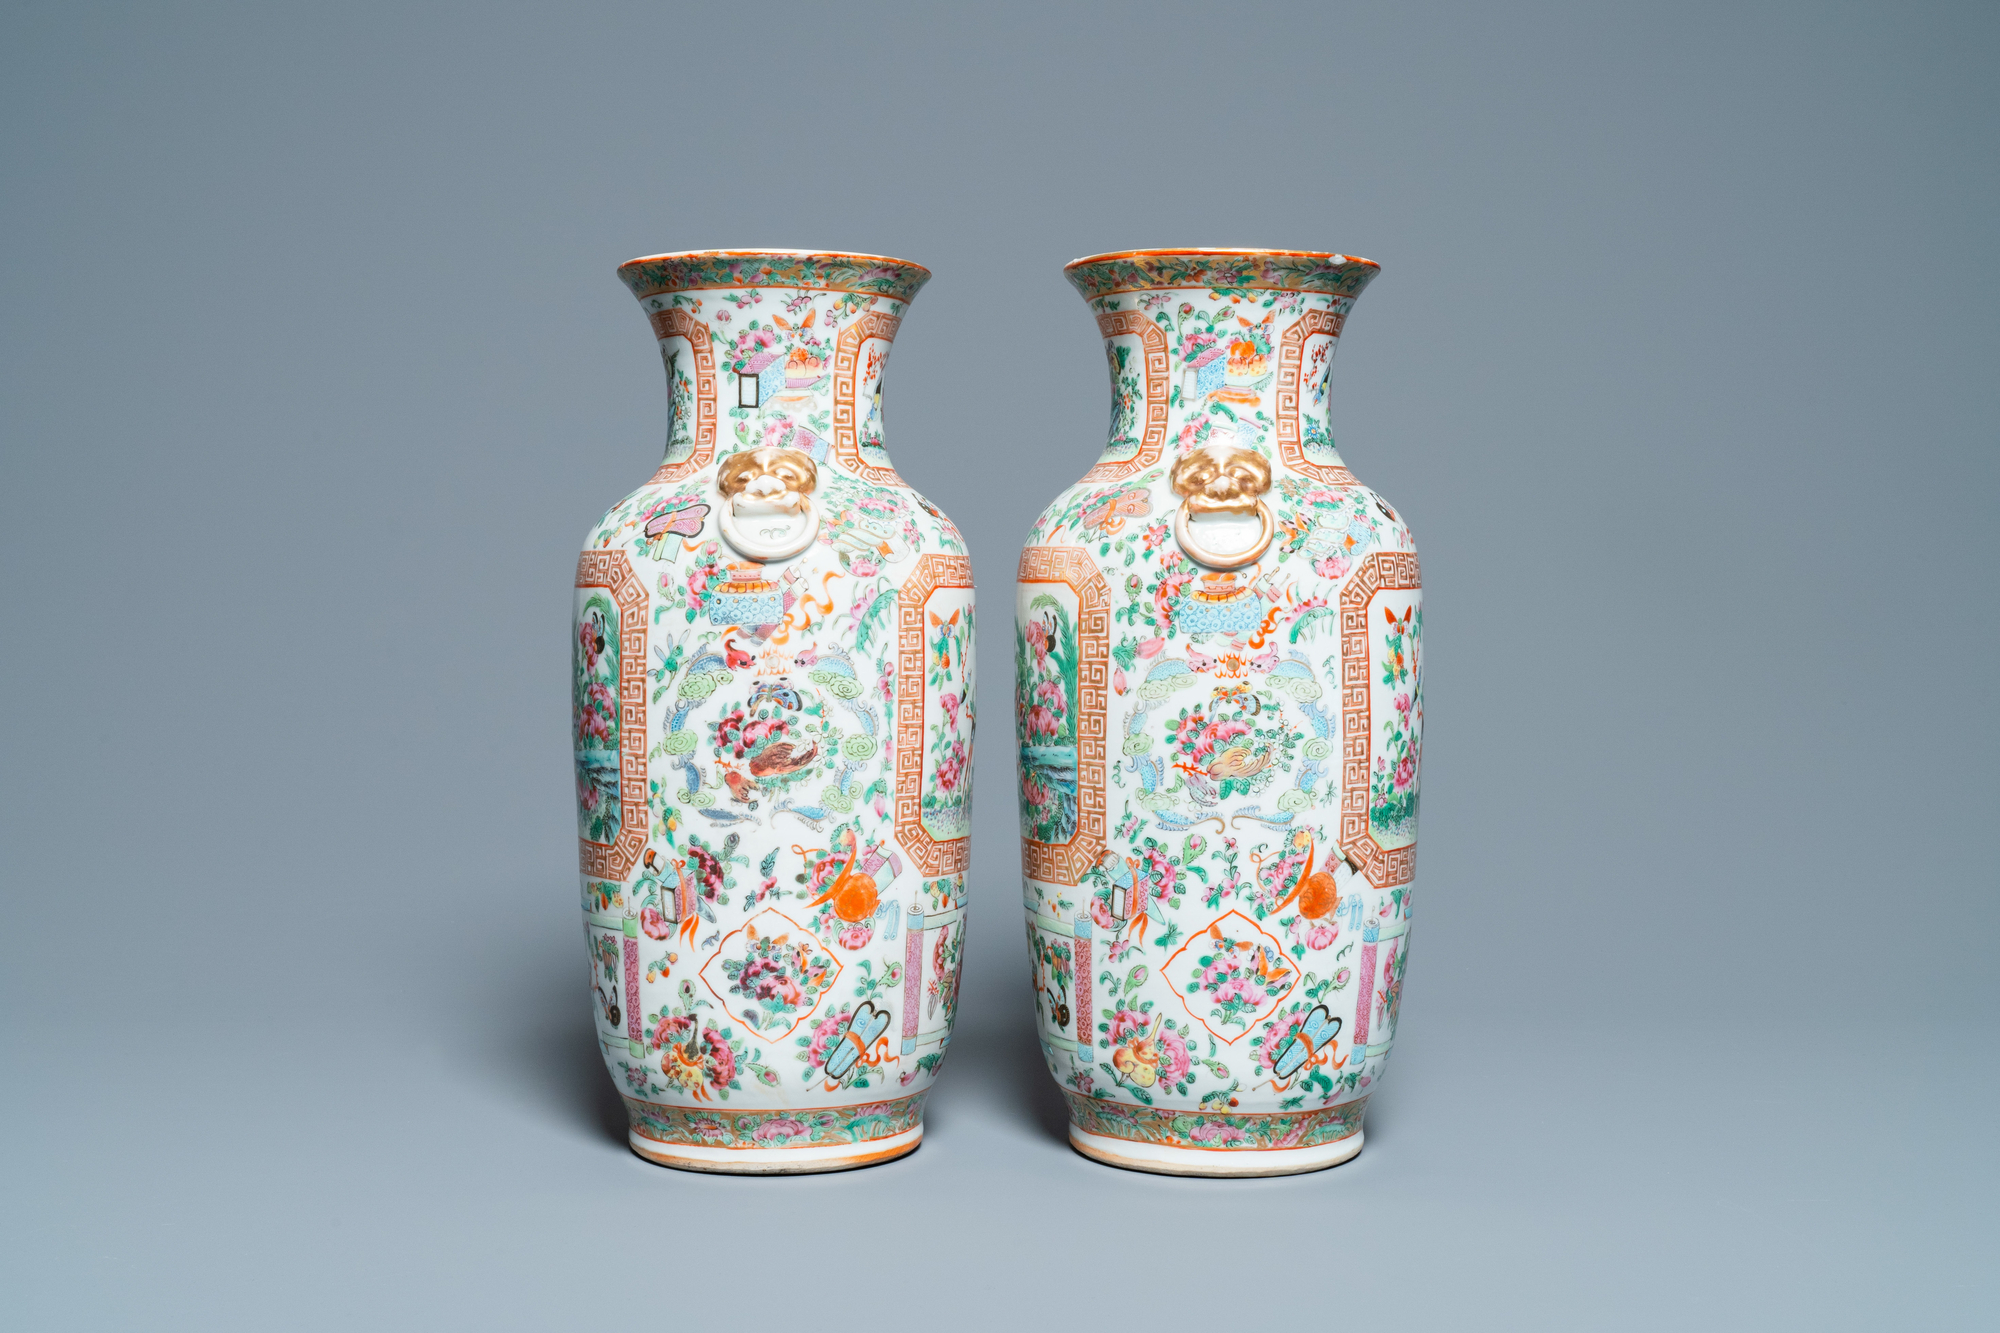 A pair of Chinese Canton famille rose vases, 19th C. - Image 2 of 6